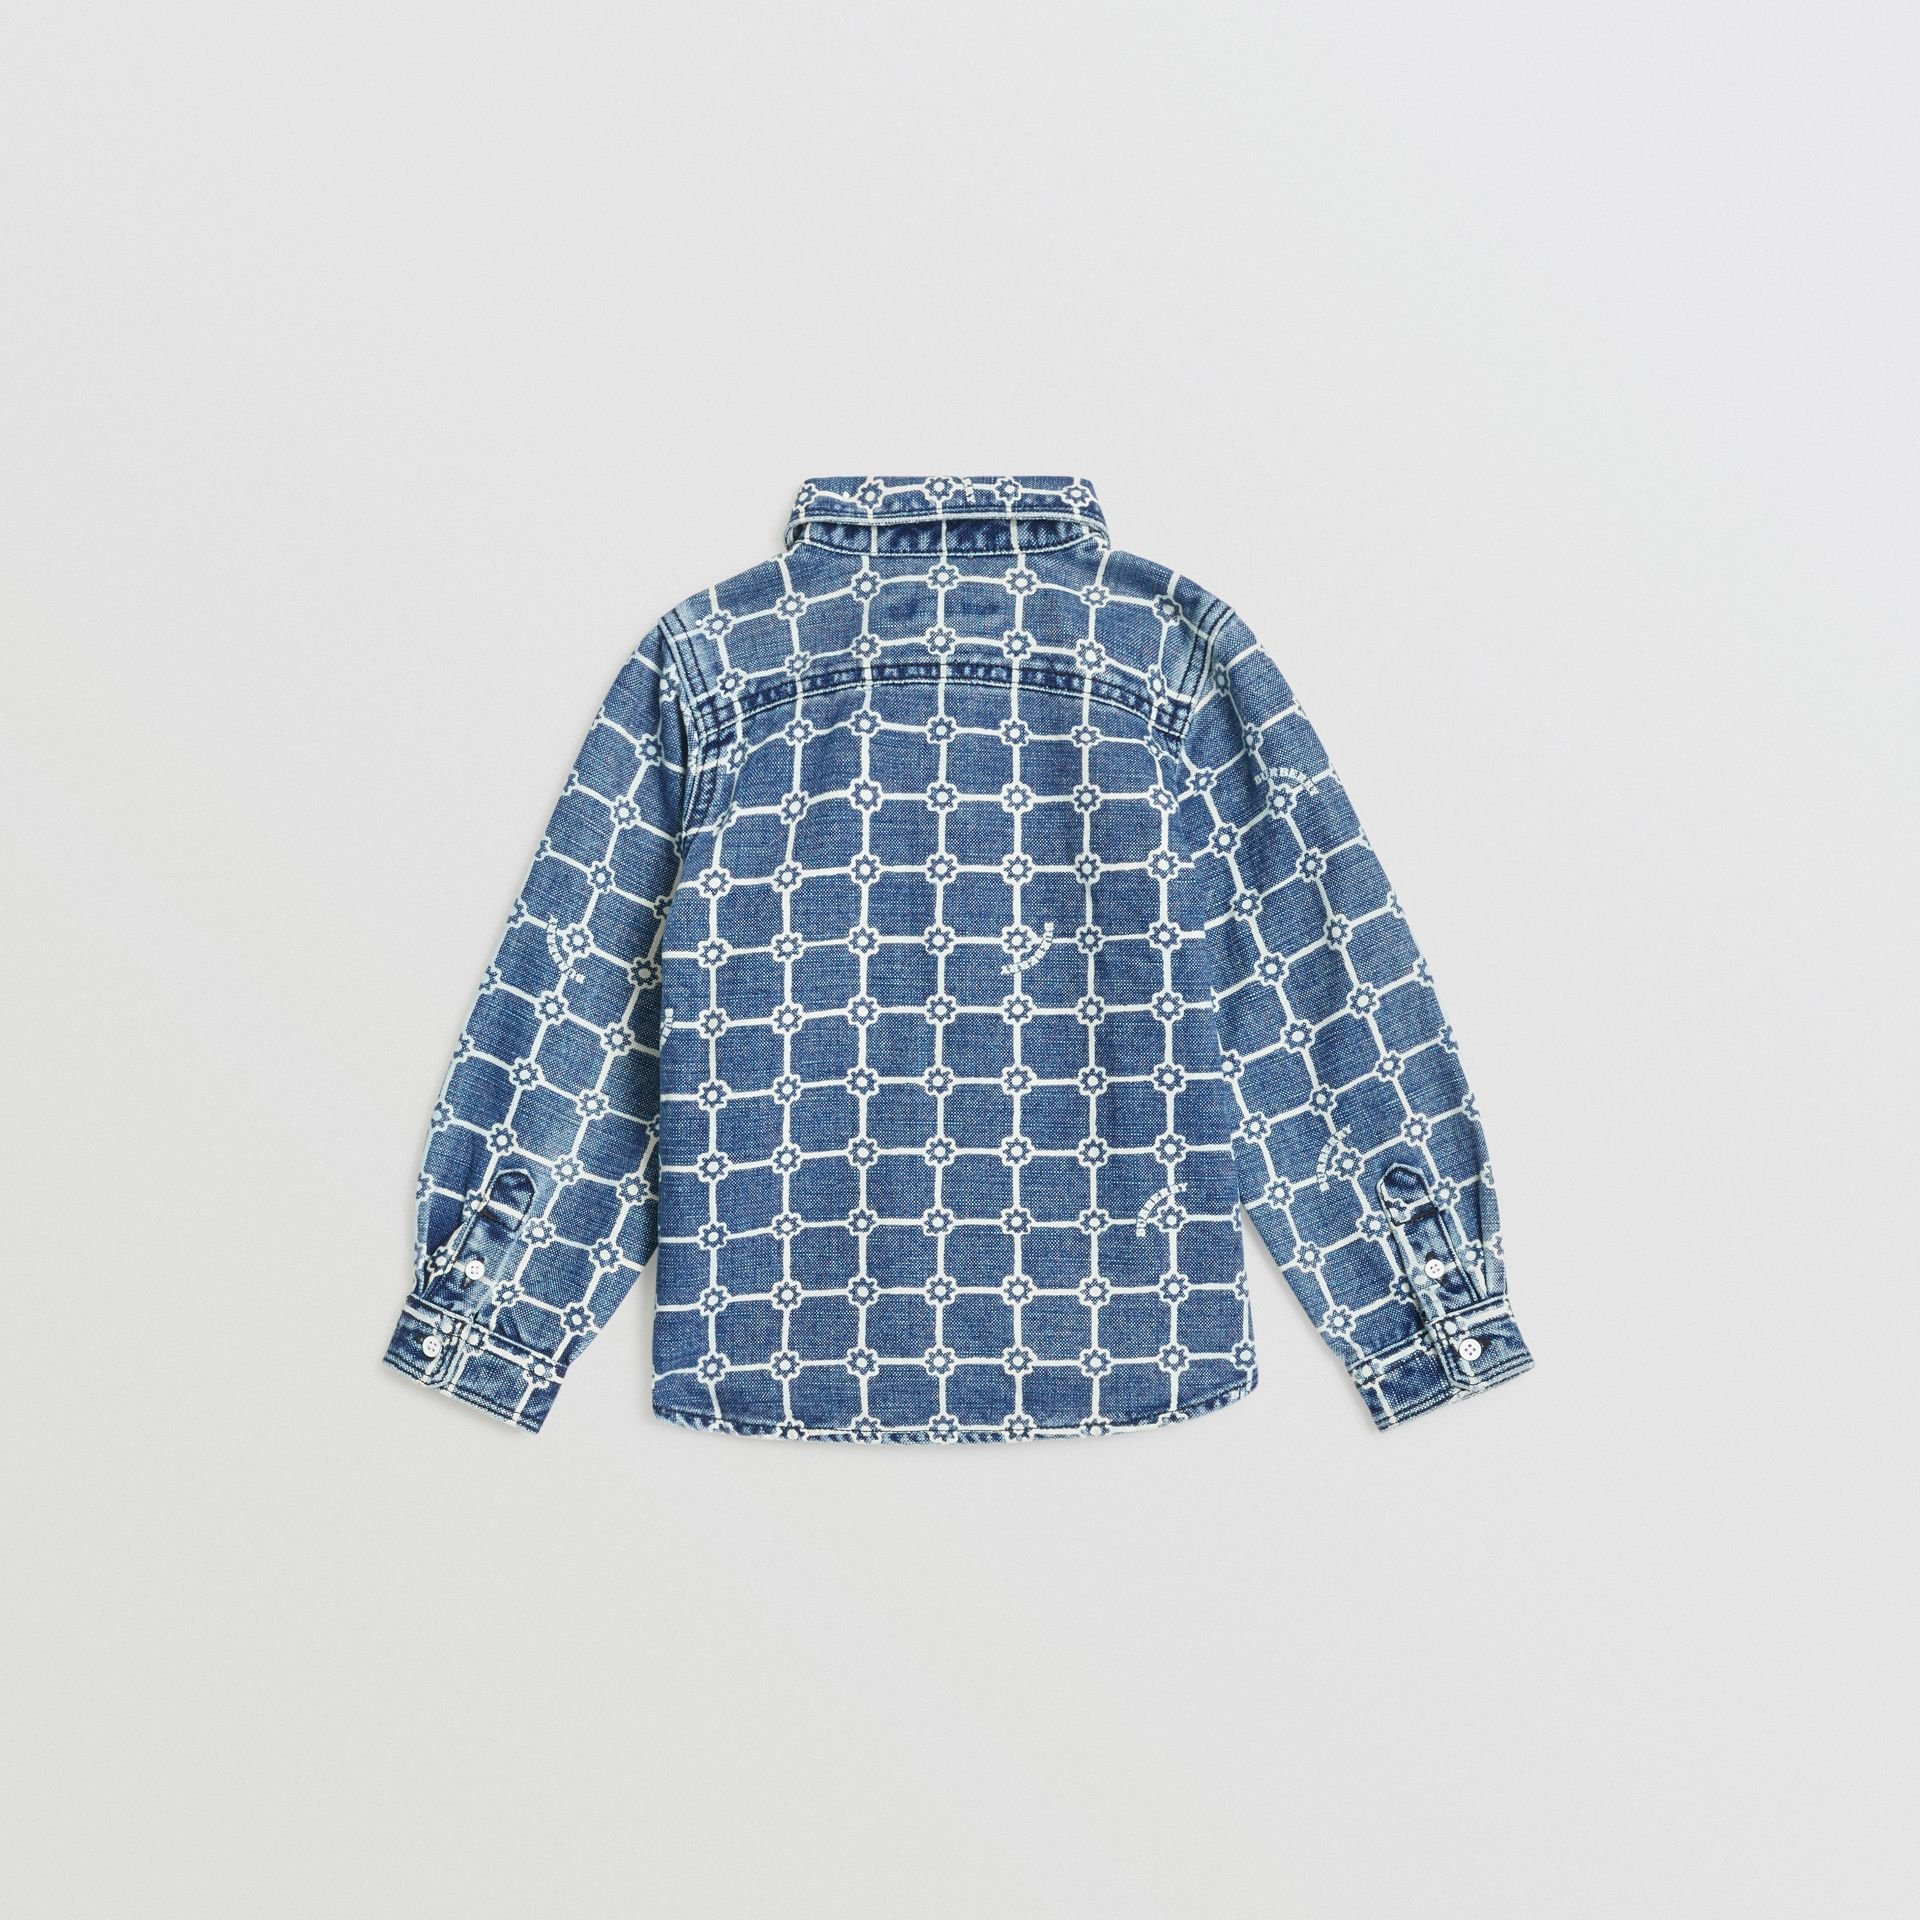 Flower Print Cotton Linen Shirt in Indigo | Burberry - gallery image 3